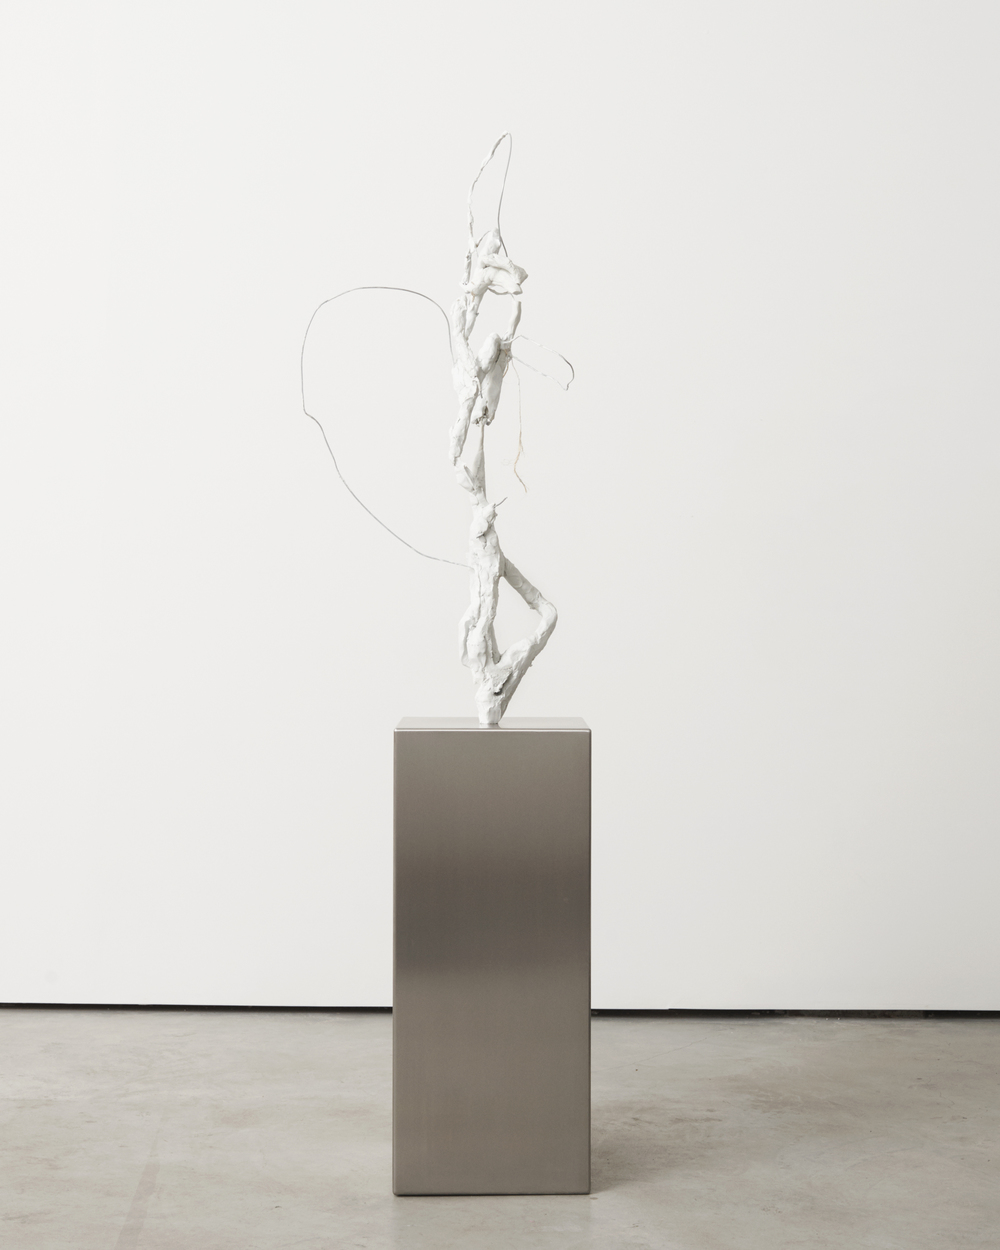 Fountain ,  2016  Stainless steel, epoxy resin, wire, twine  65 x 18 x 12.5 in/ 165 x 46 x 32 cm